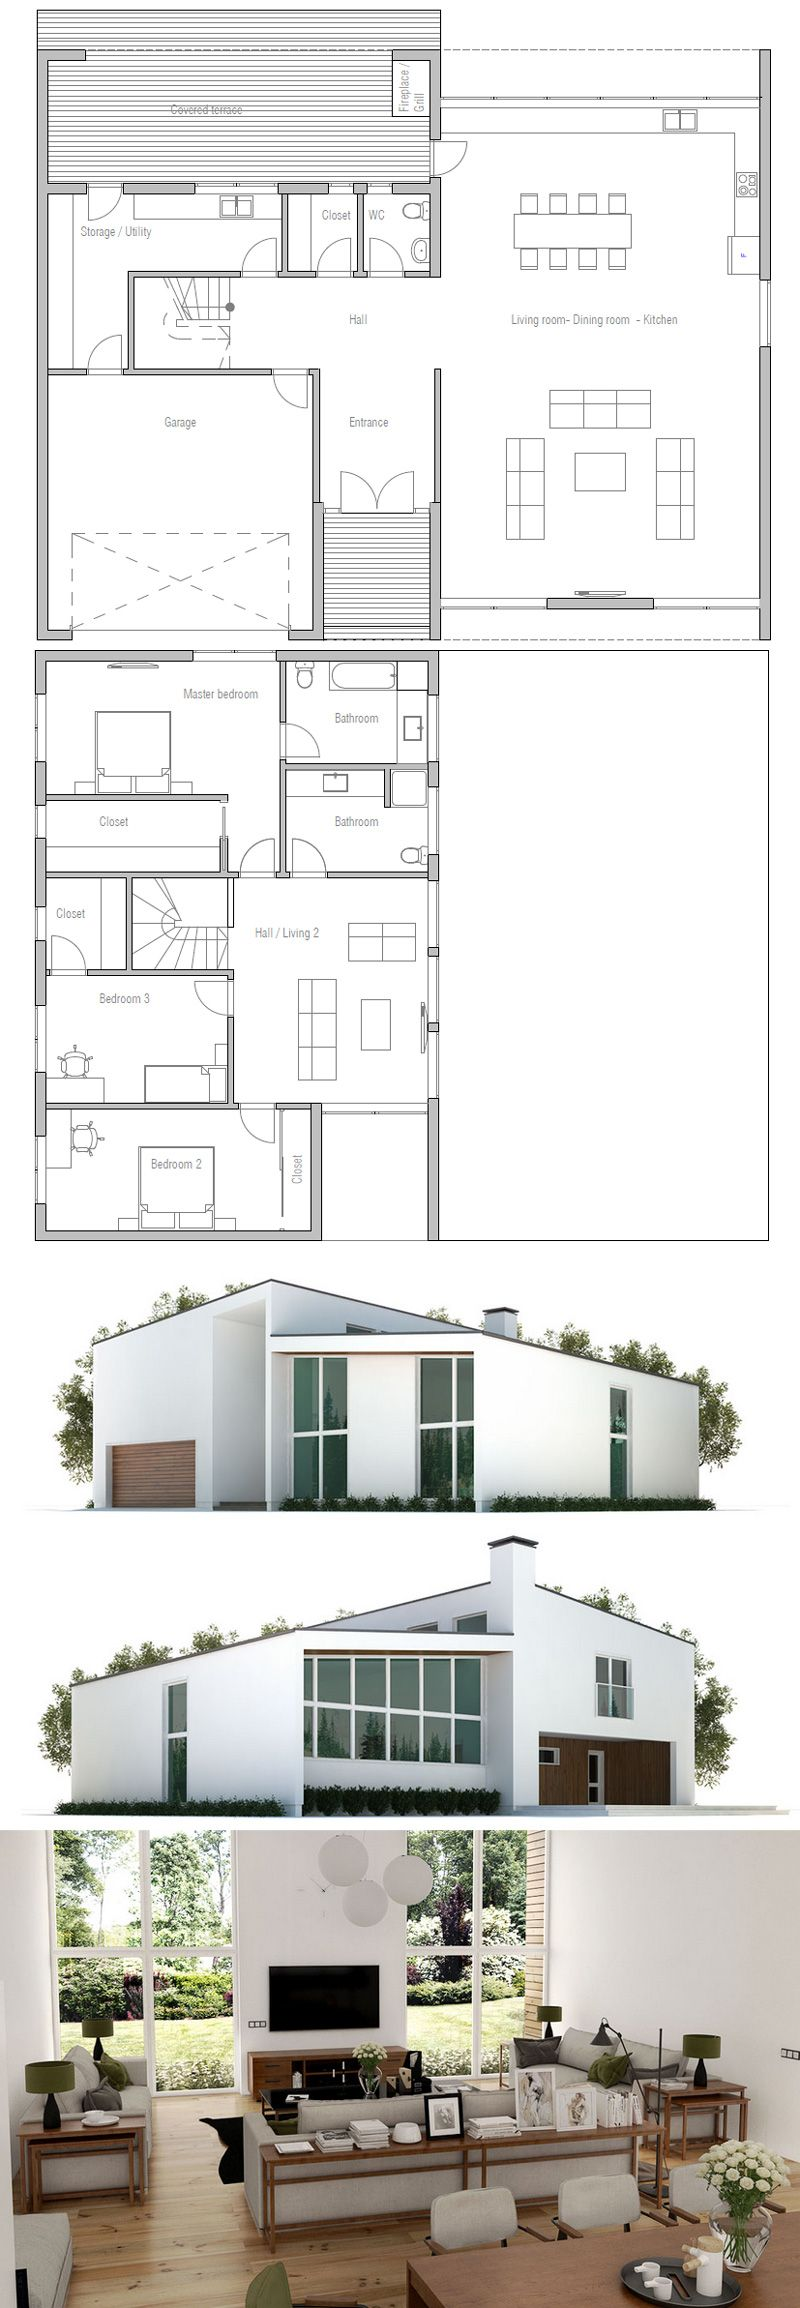 1000+ images about Dreamhouse Haus, wilight and House